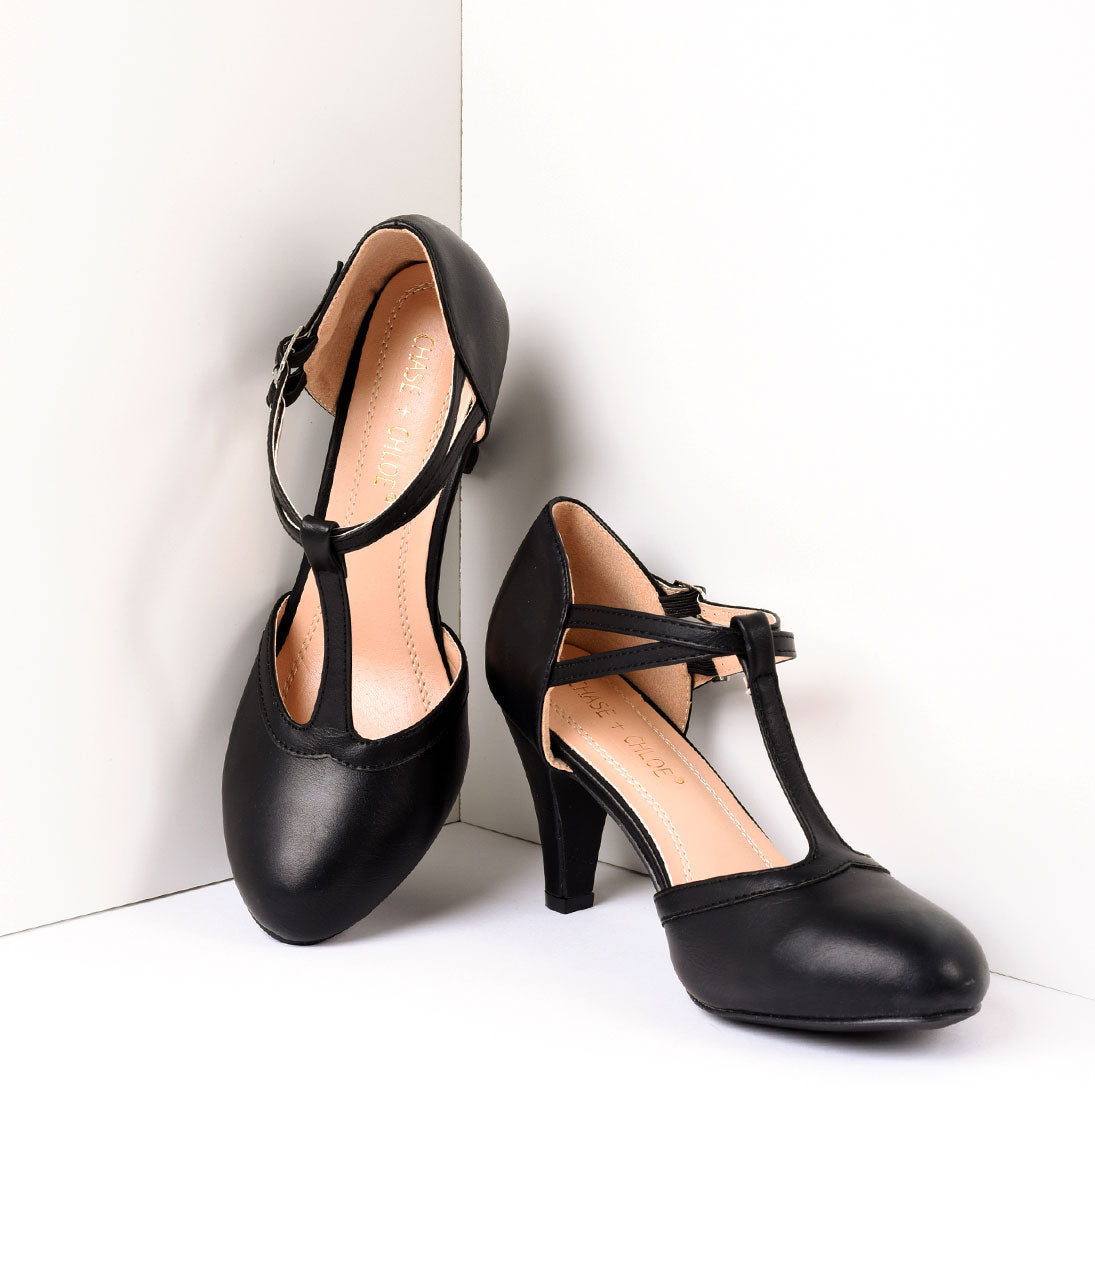 50s Inspired Shoes